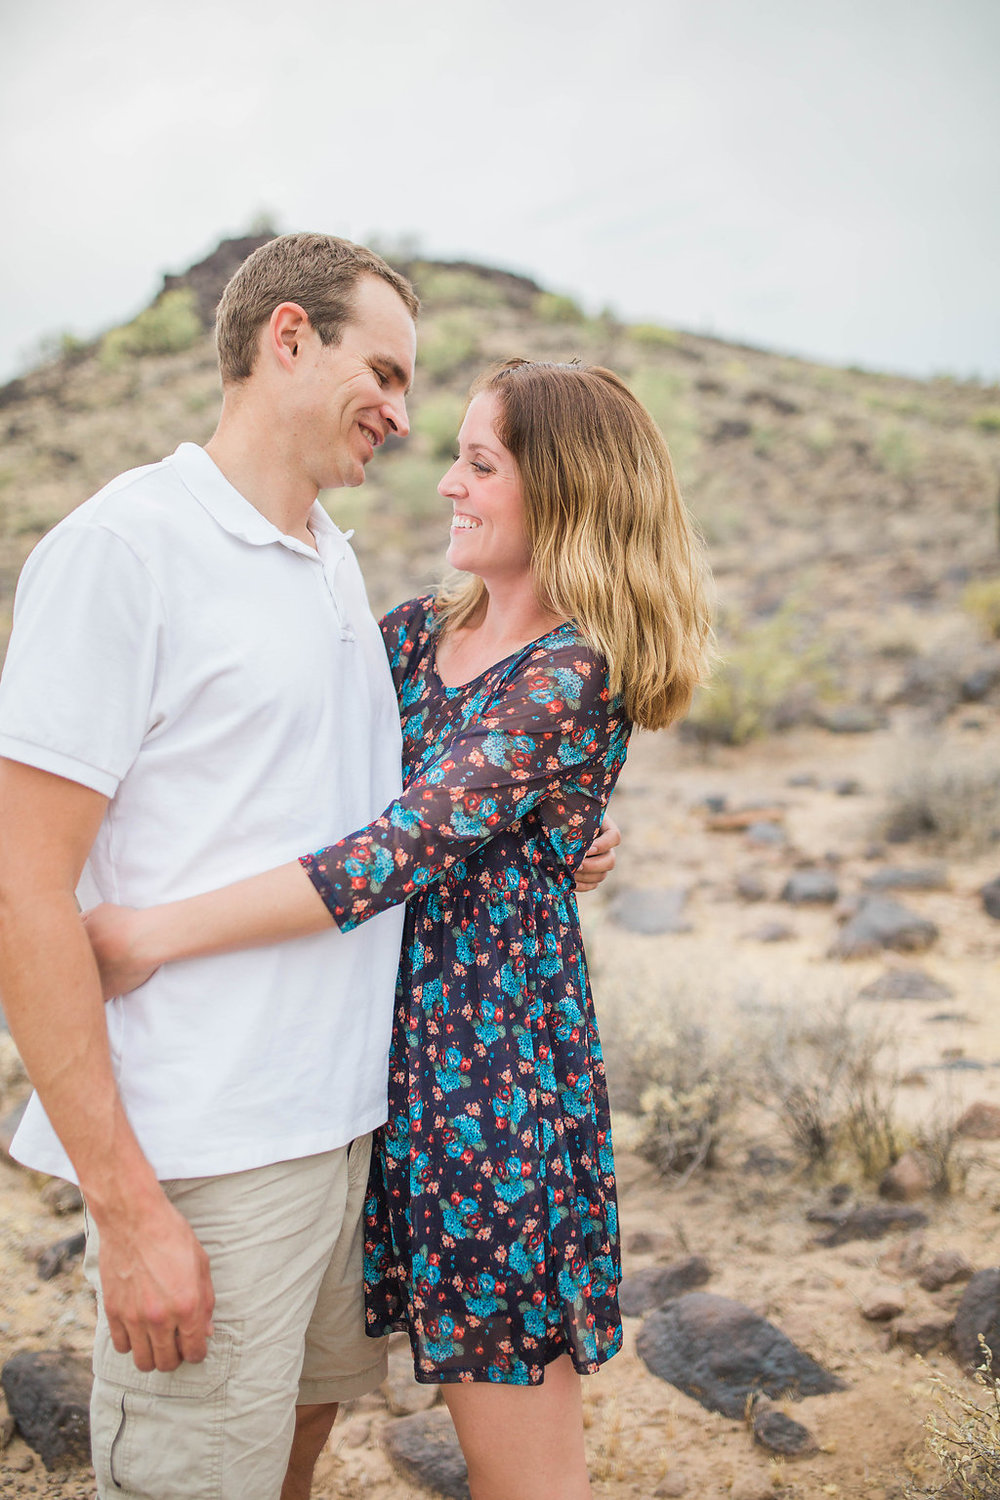 Desert Family Photo Shoot in Arizona   Emma Rose Company   Portrait Photographer   Seattle Wedding Photographer   Adorable Family Photo Shoot Outside   Family Posing   Cute Kids with Dad   Family Photo Shoot   Husband and Wife Pictures   What to Wear for pictures